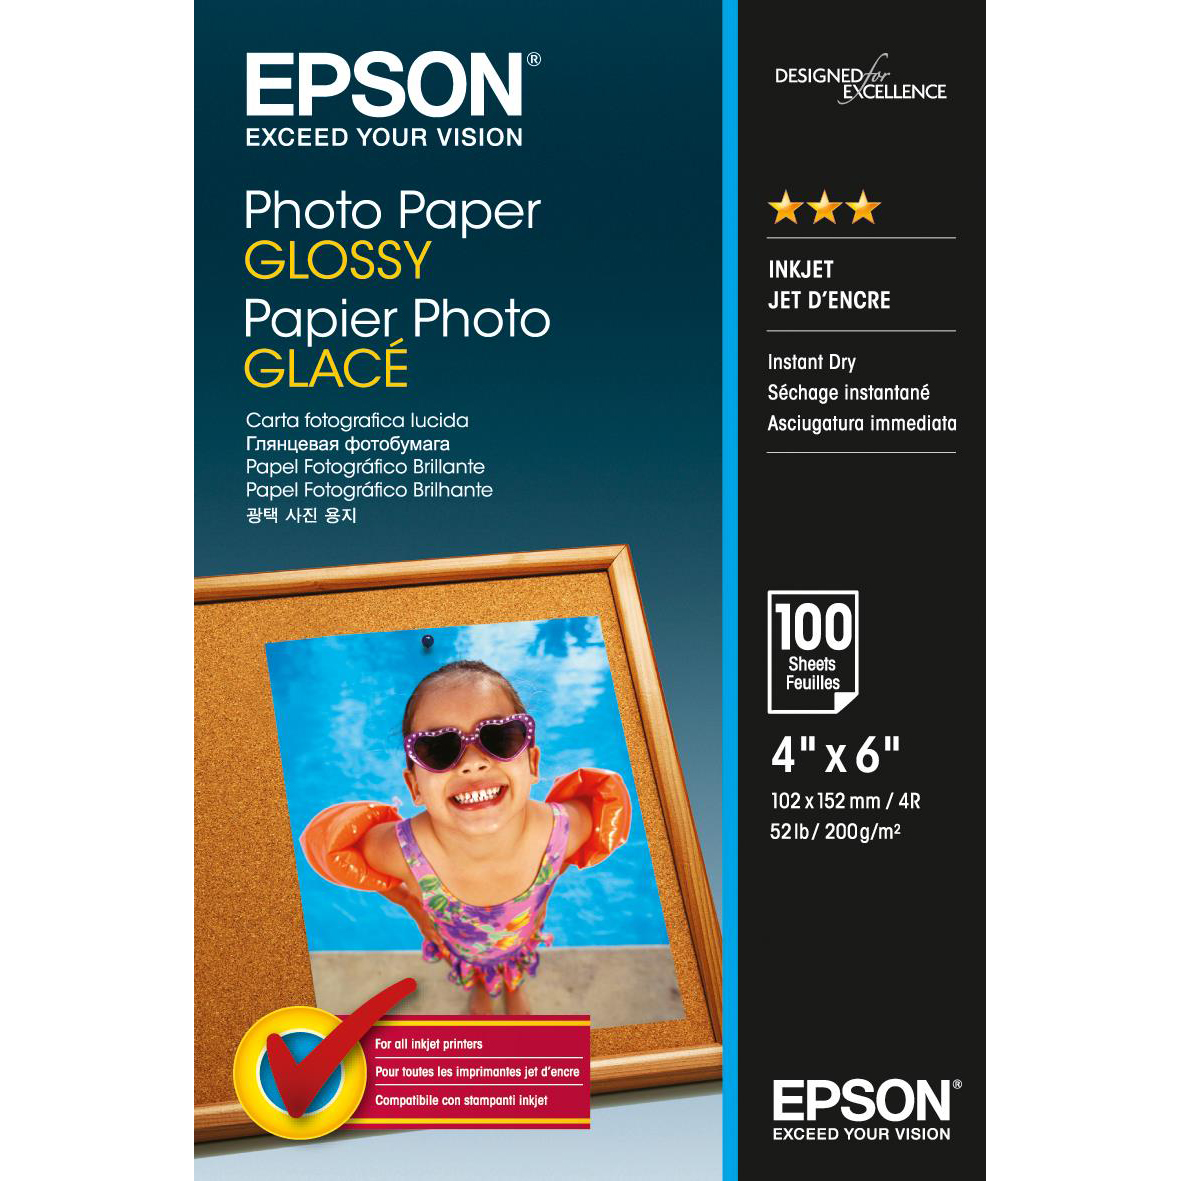 Epson Photo Paper Glossy 200gsm 100x150mm Ref C13S042548 [100 Sheets] 3to5 Day Leadtime